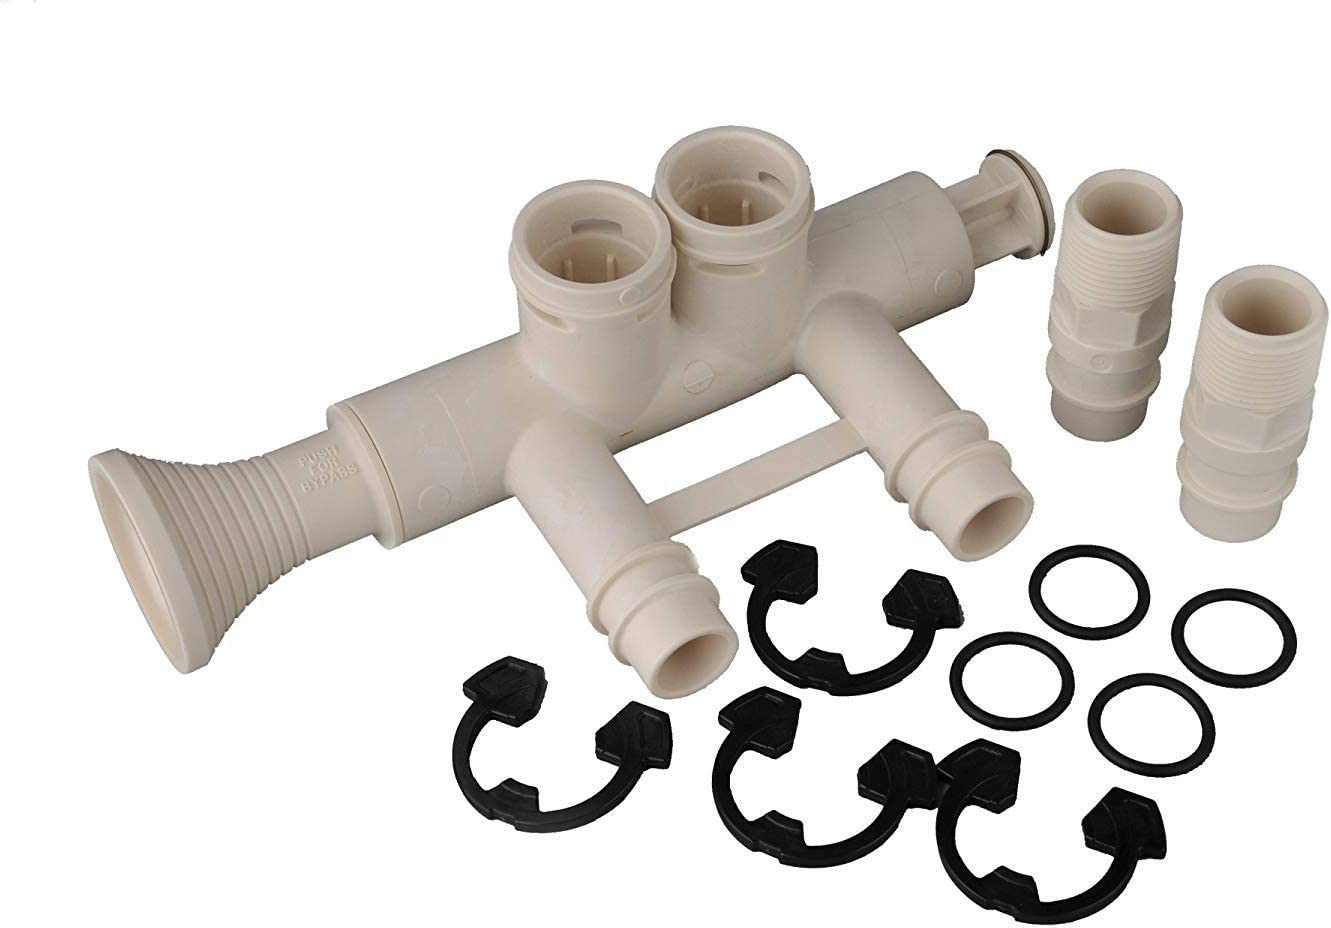 4 4 High Flow 1 Water Softener Bypass Valve Kit with 7345396 2 O-rings Adapters, Clips and